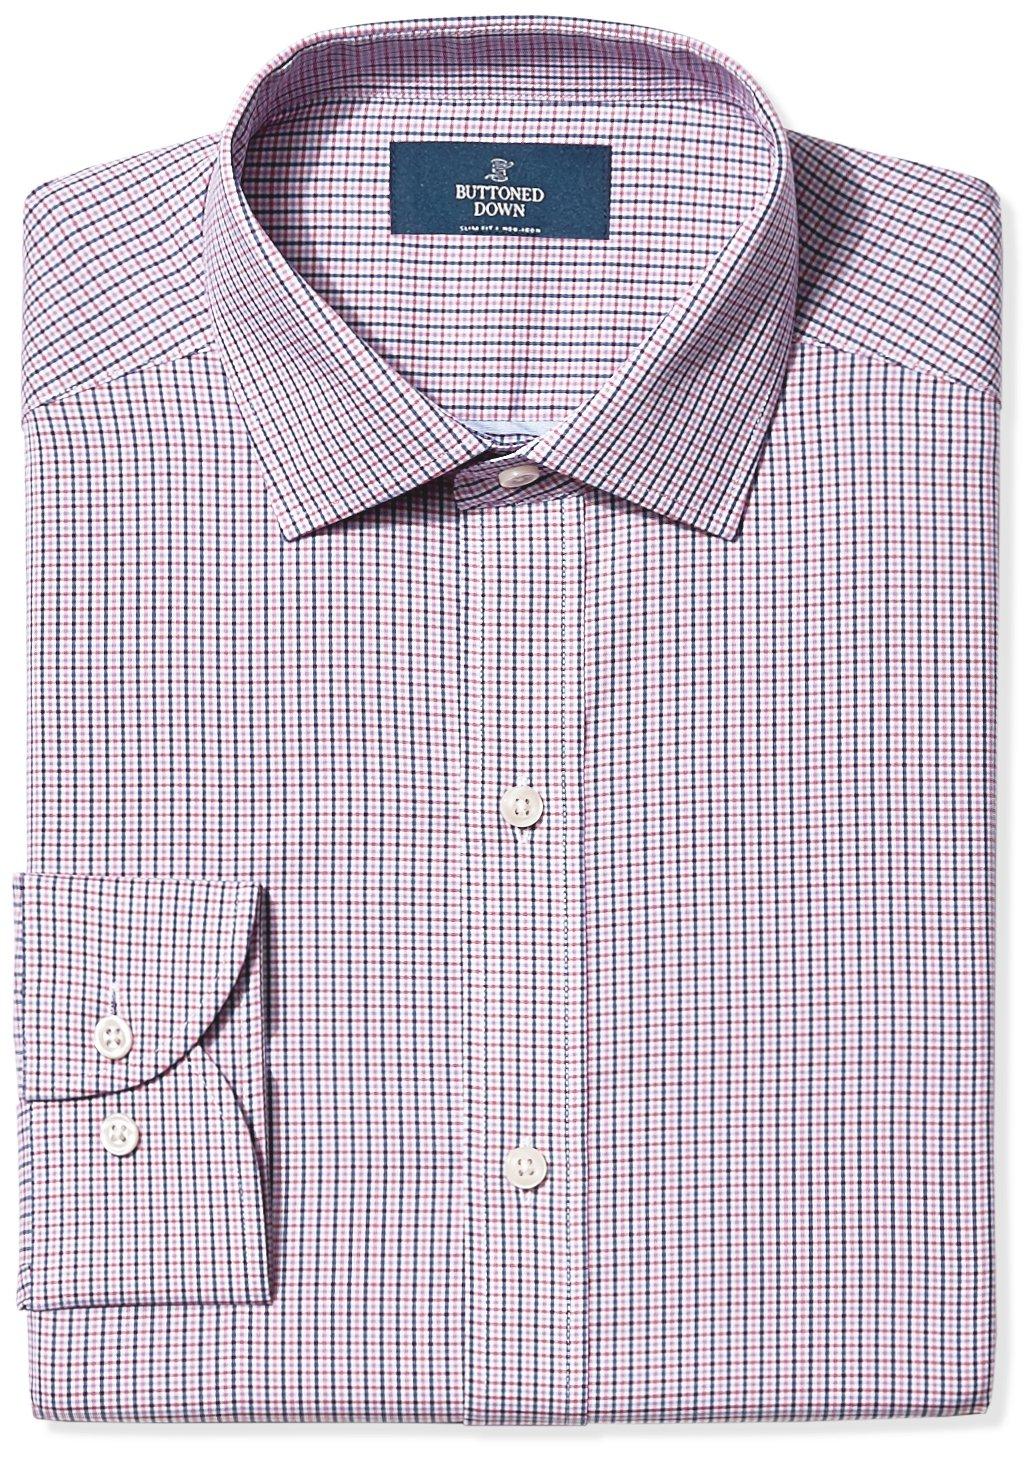 Buttoned Down Men's Slim Fit Spread-Collar Non-Iron Dress Shirt, Berry/Red/Navy Tatersol, 17.5'' Neck 37'' Sleeve by Buttoned Down (Image #1)